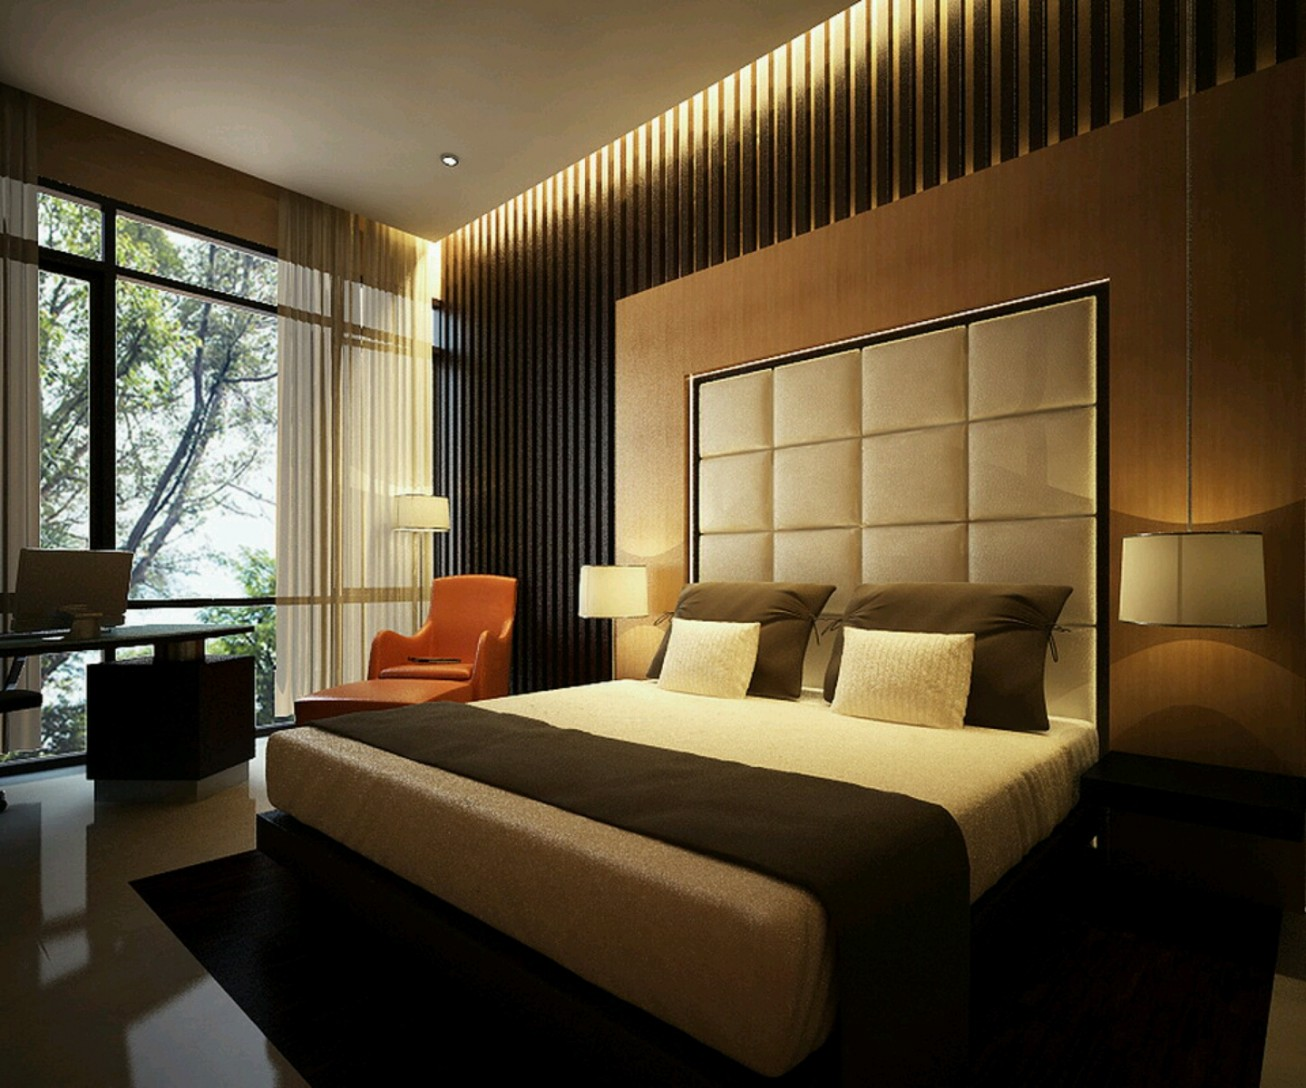 Best Bedroom Designs 2015 And Its Price To Be Ready